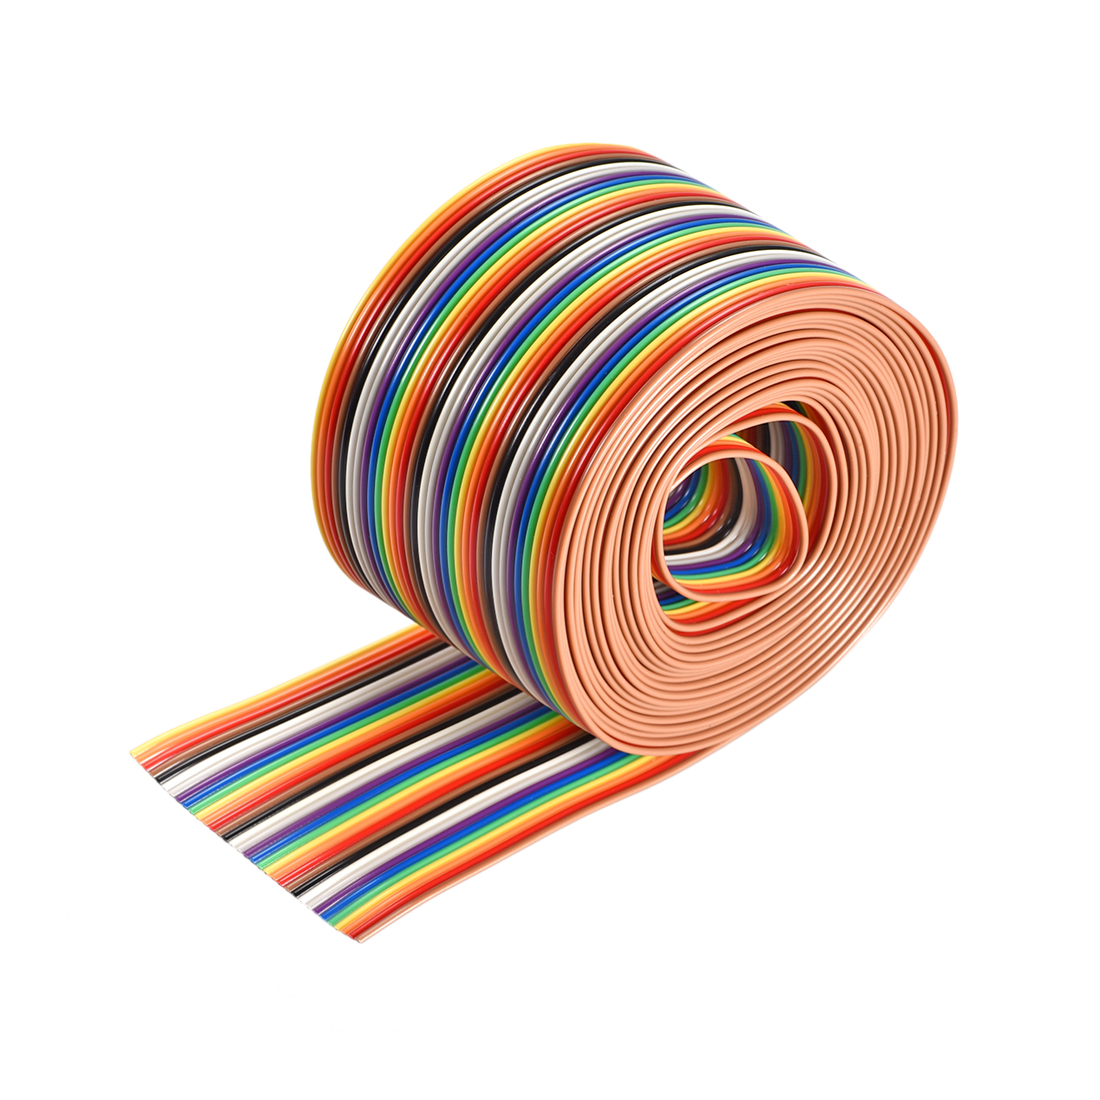 IDC Rainbow Wire Flat Ribbon Cable 34P 1.27mm Pitch 3meter/9.8ft Length